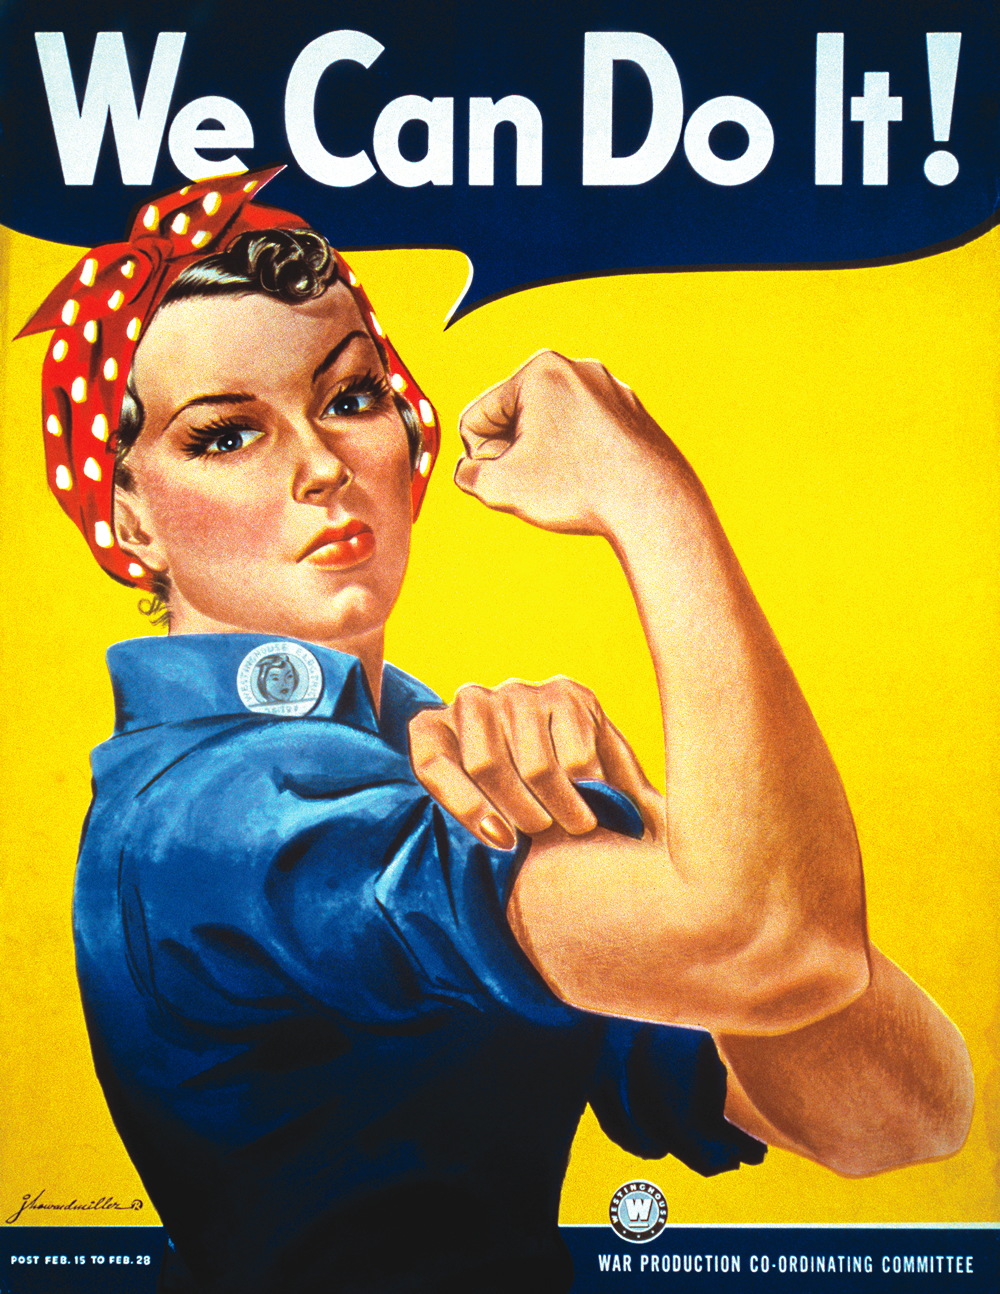 We can do it! WW2 poster (source: Wikimedia)